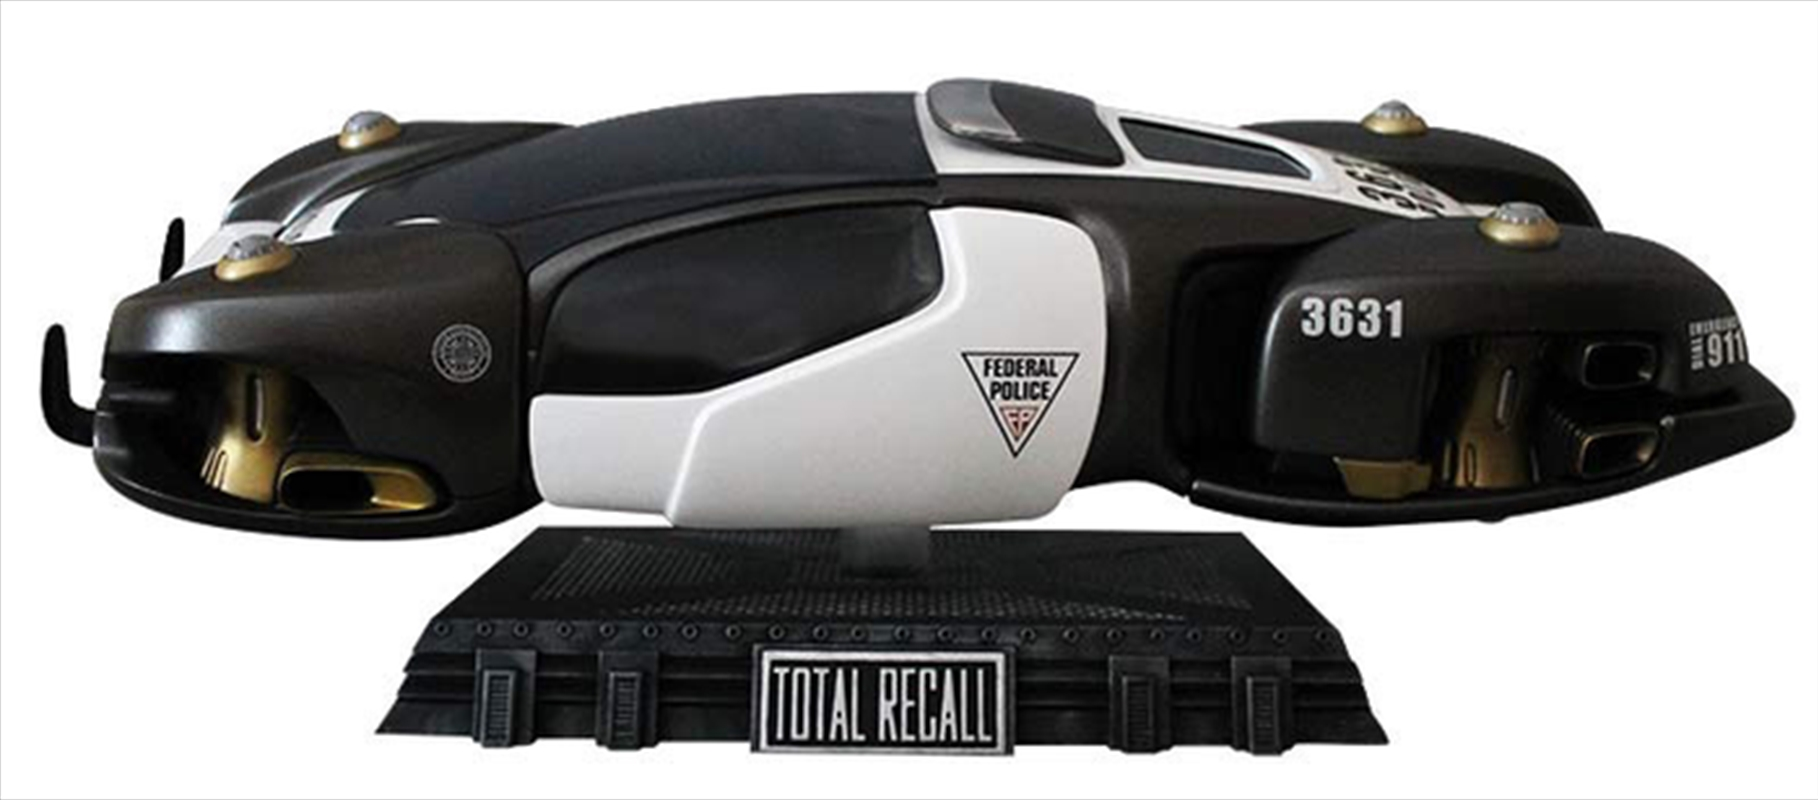 Total Recall - Flying Police Car Replica (2012) | Collectable